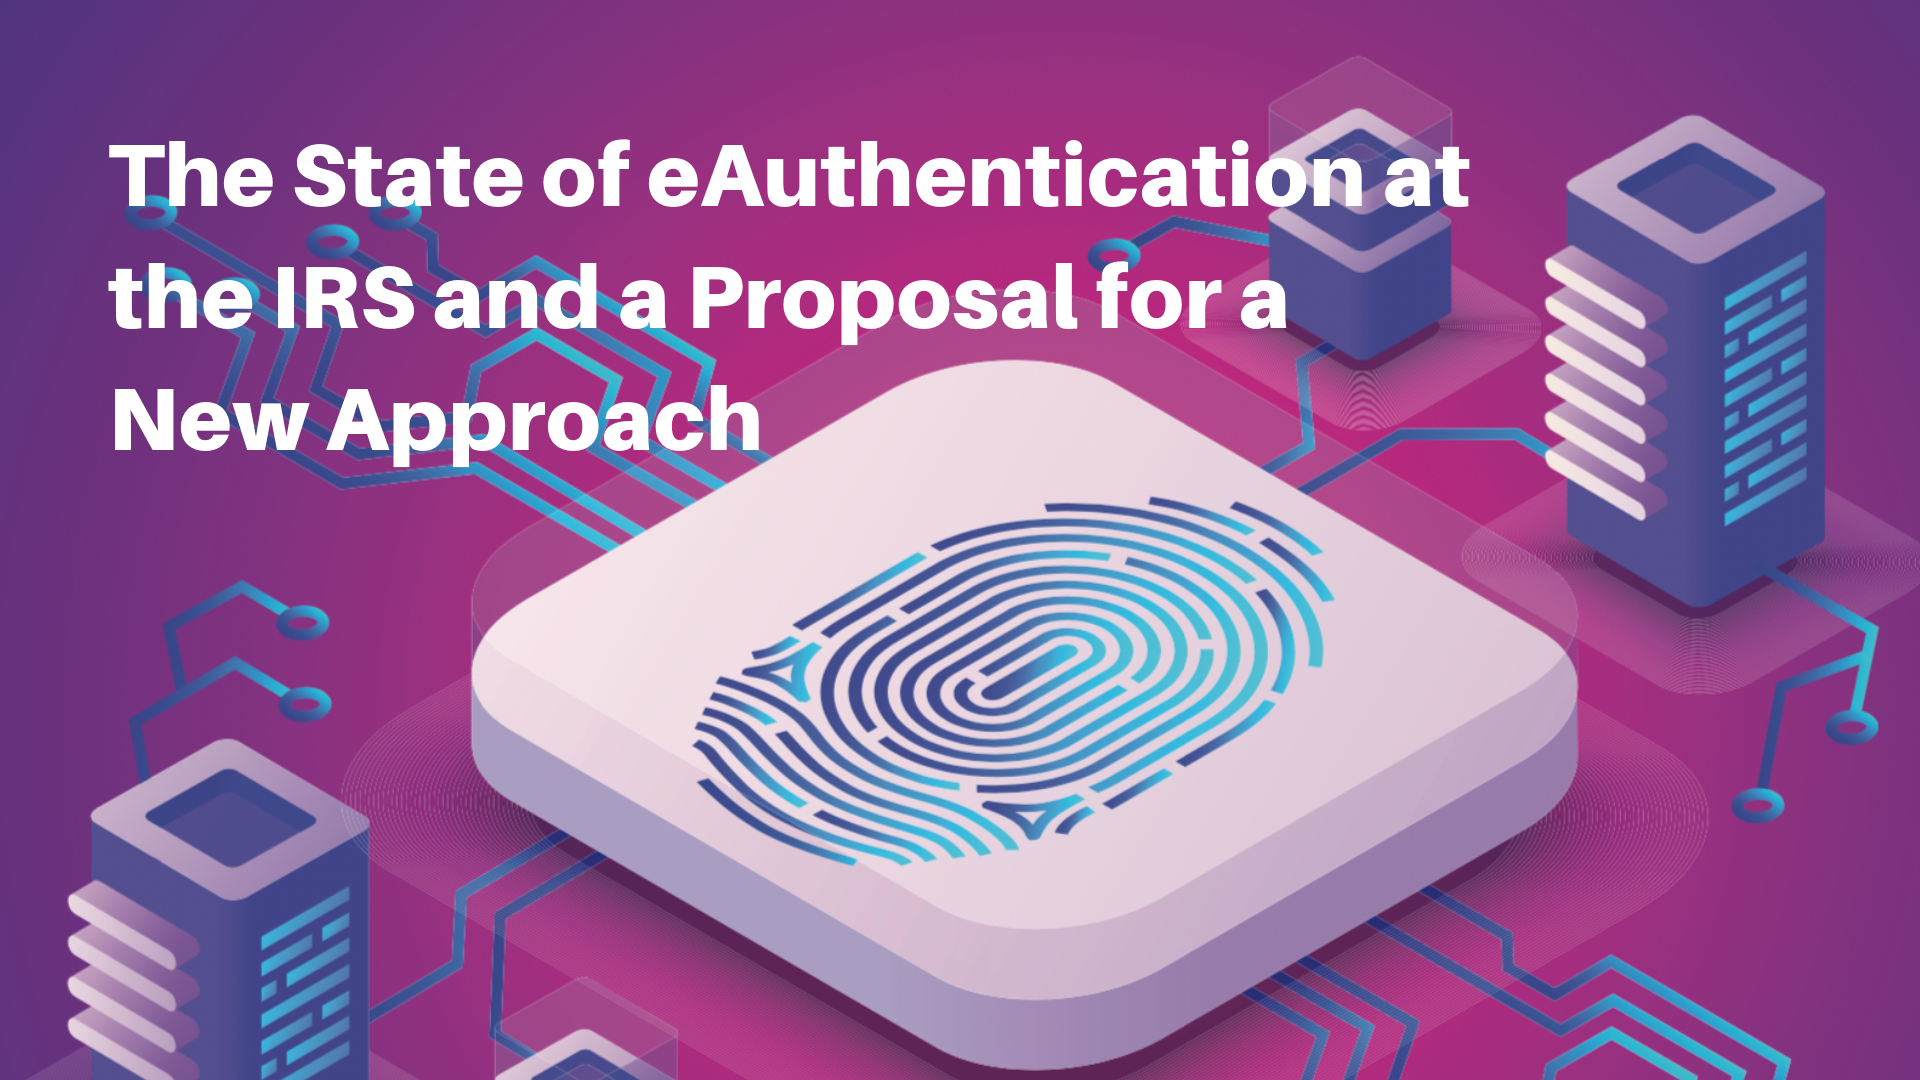 The Current State of eAuthentication at the IRS and a Proposal for a